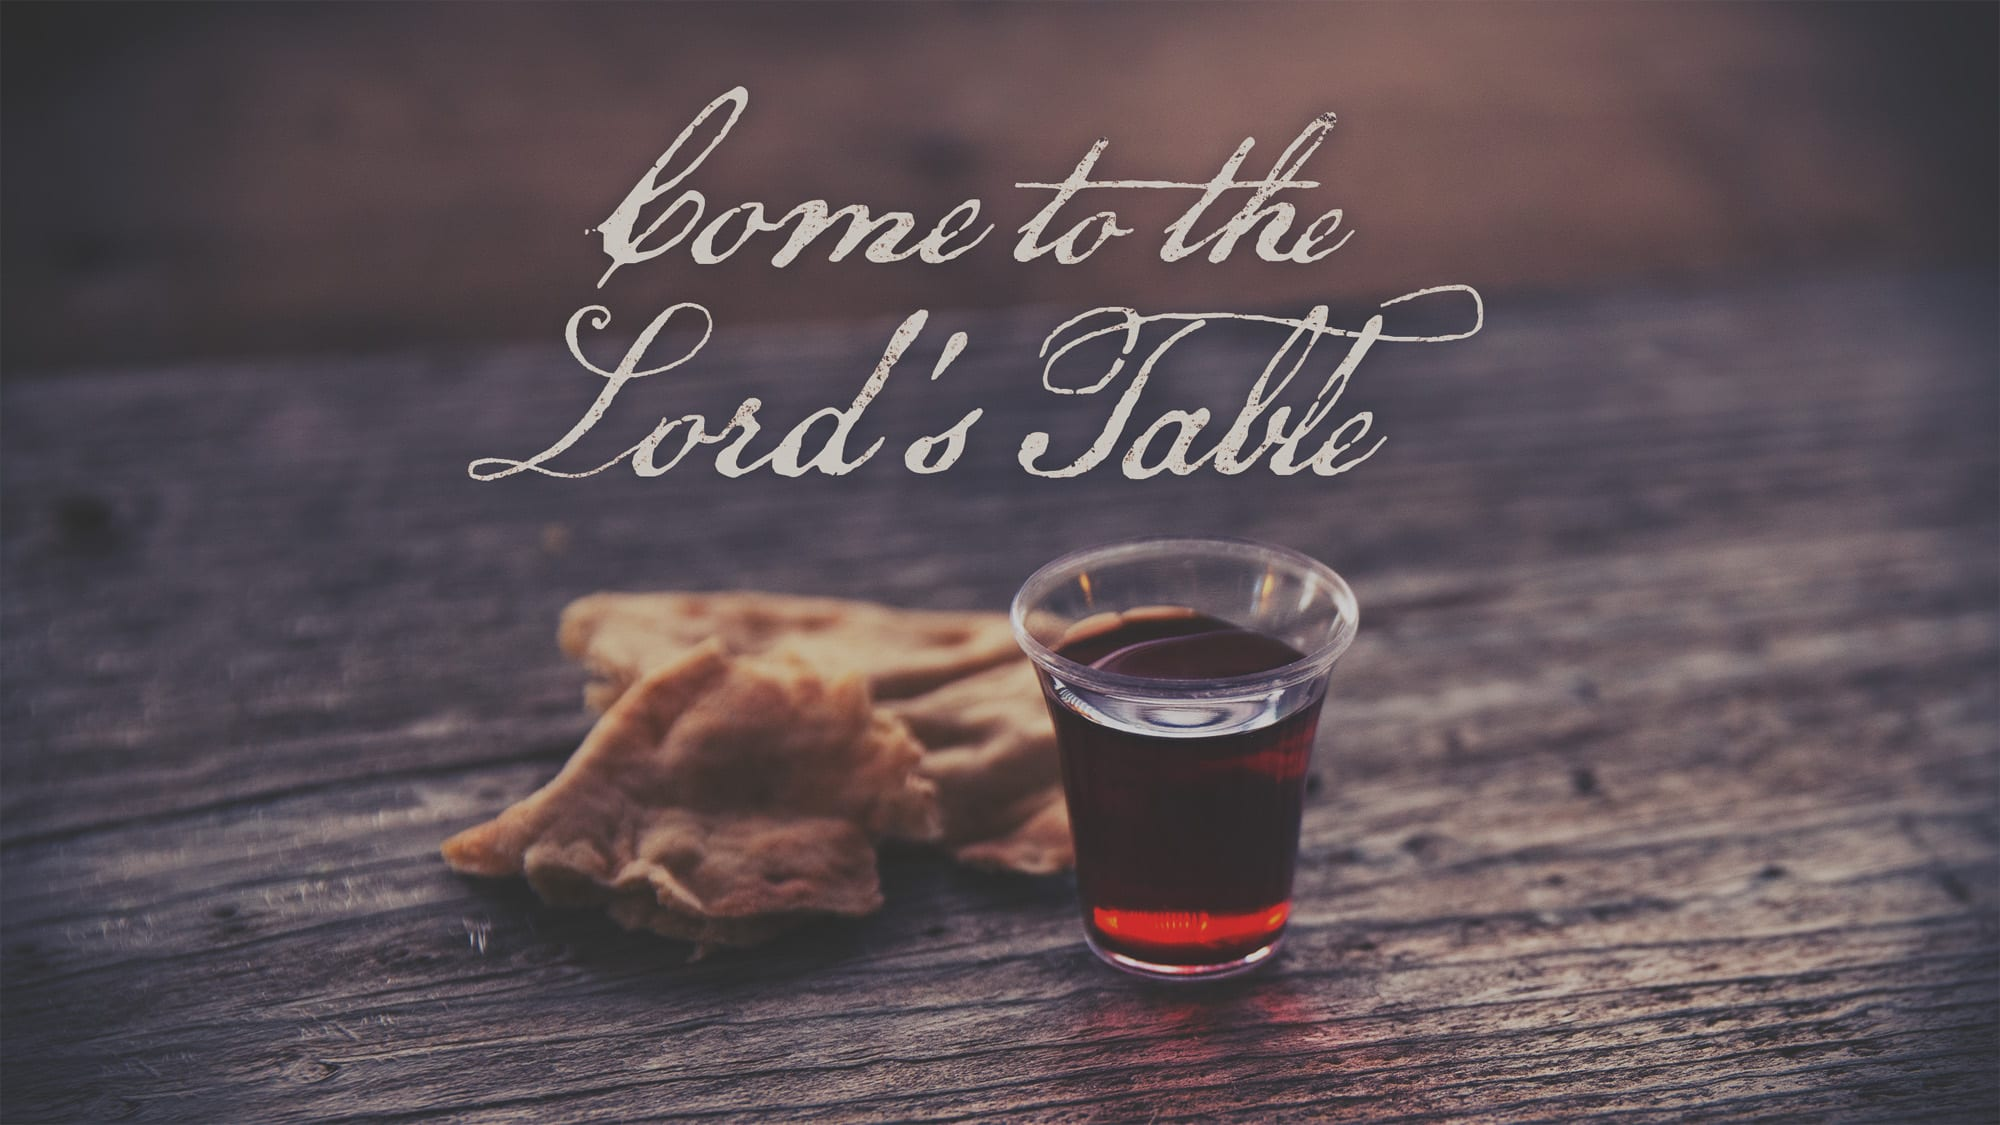 COME TO THE LORD'S TABLE | First Baptist Church Brookhaven